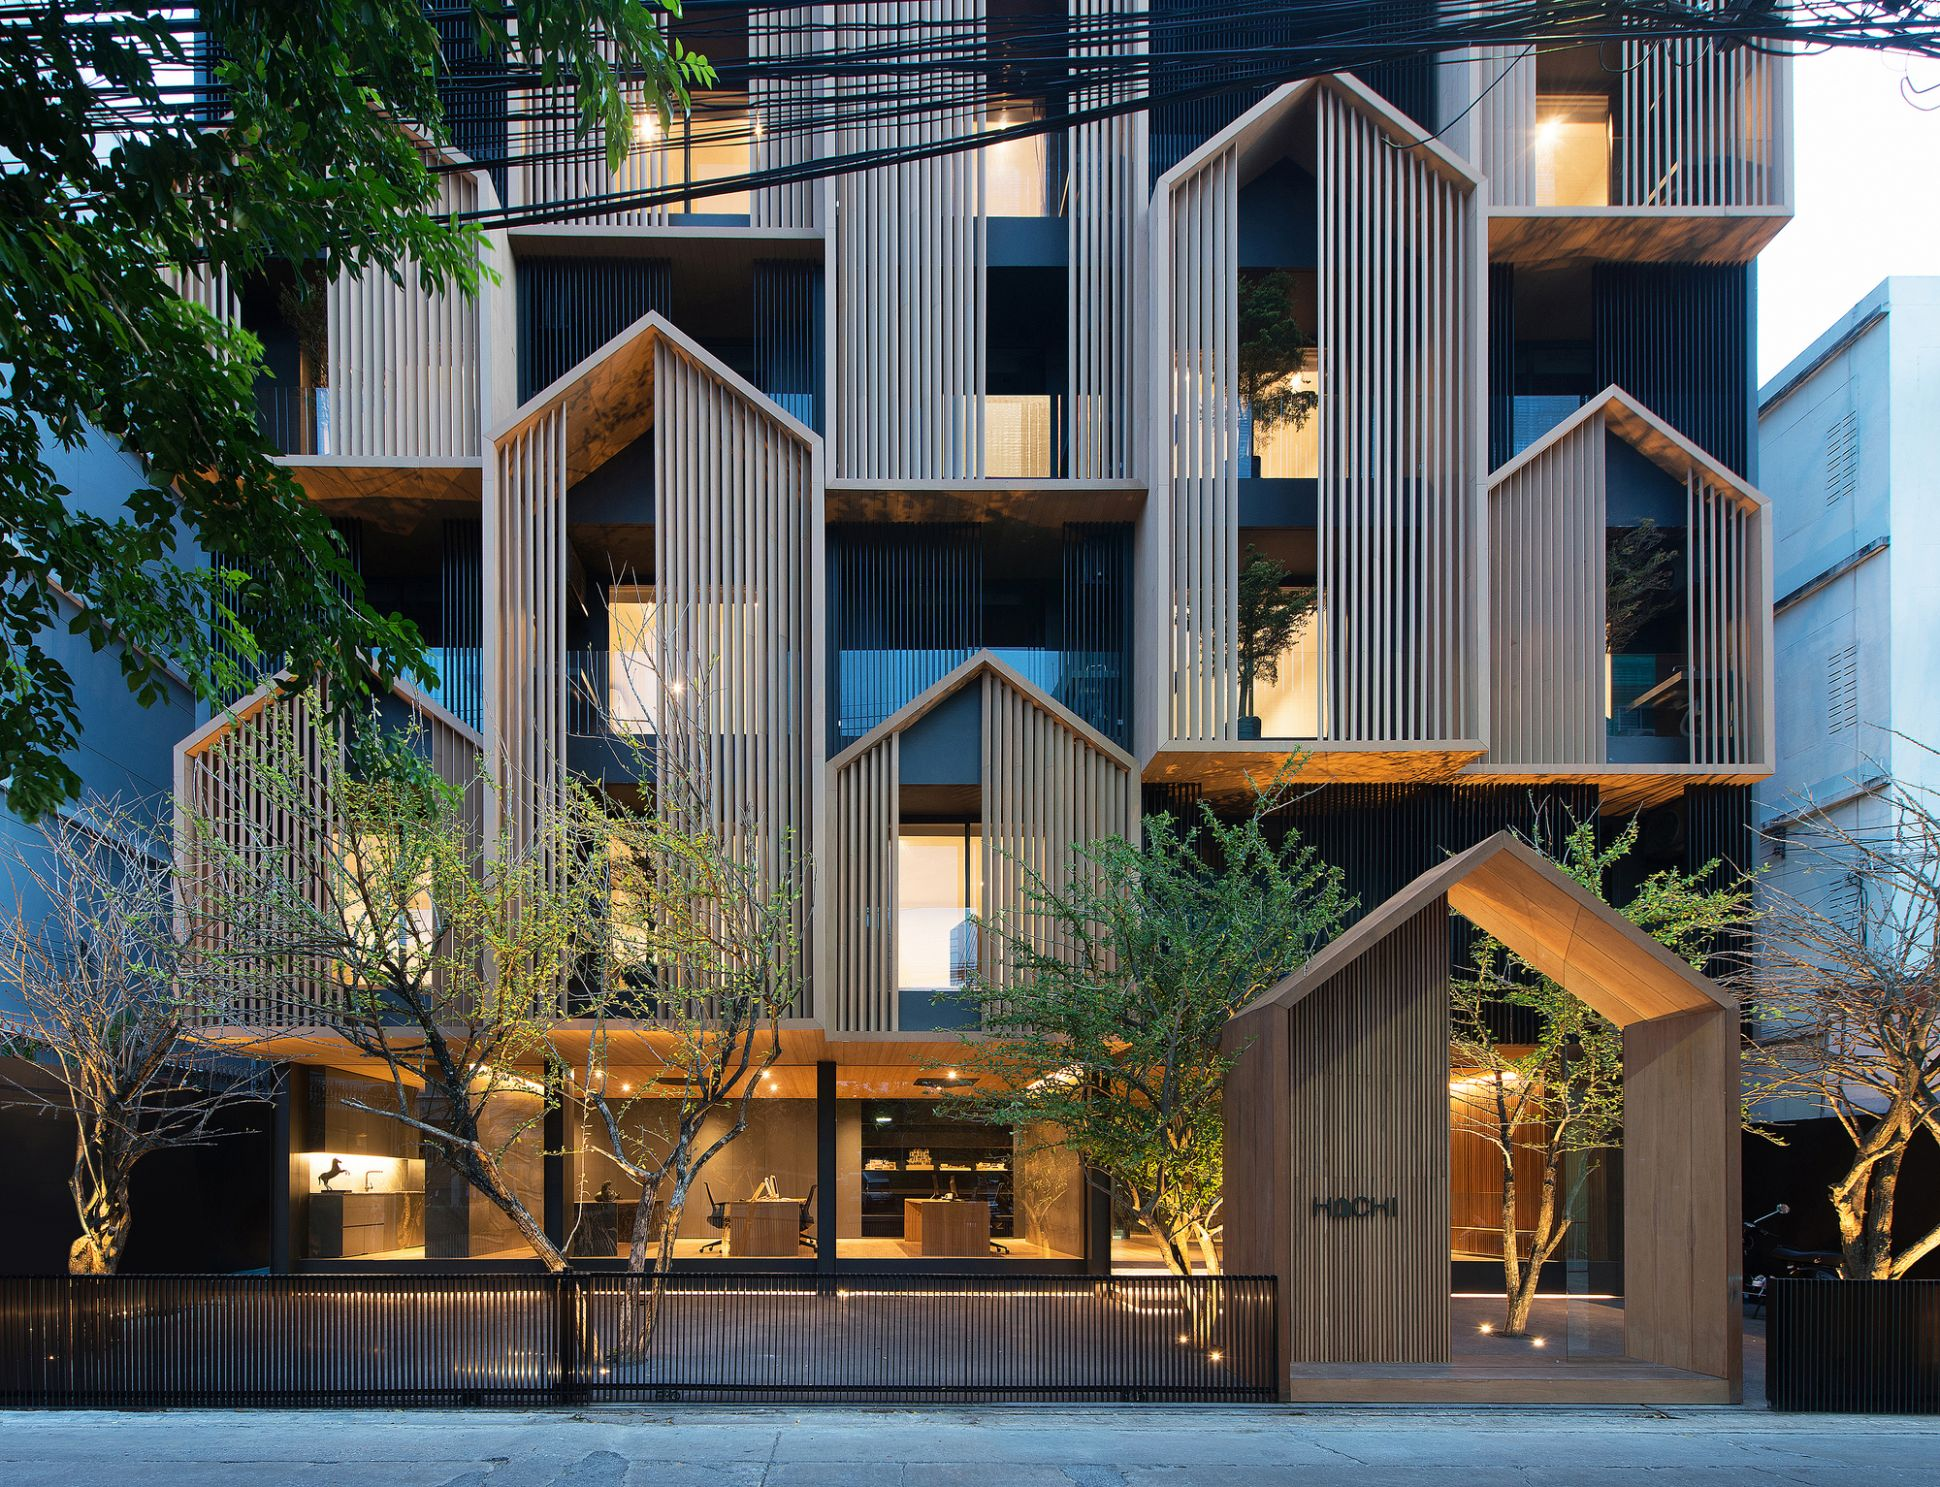 HACHI Serviced Apartment / Octane architect & design | ArchDaily